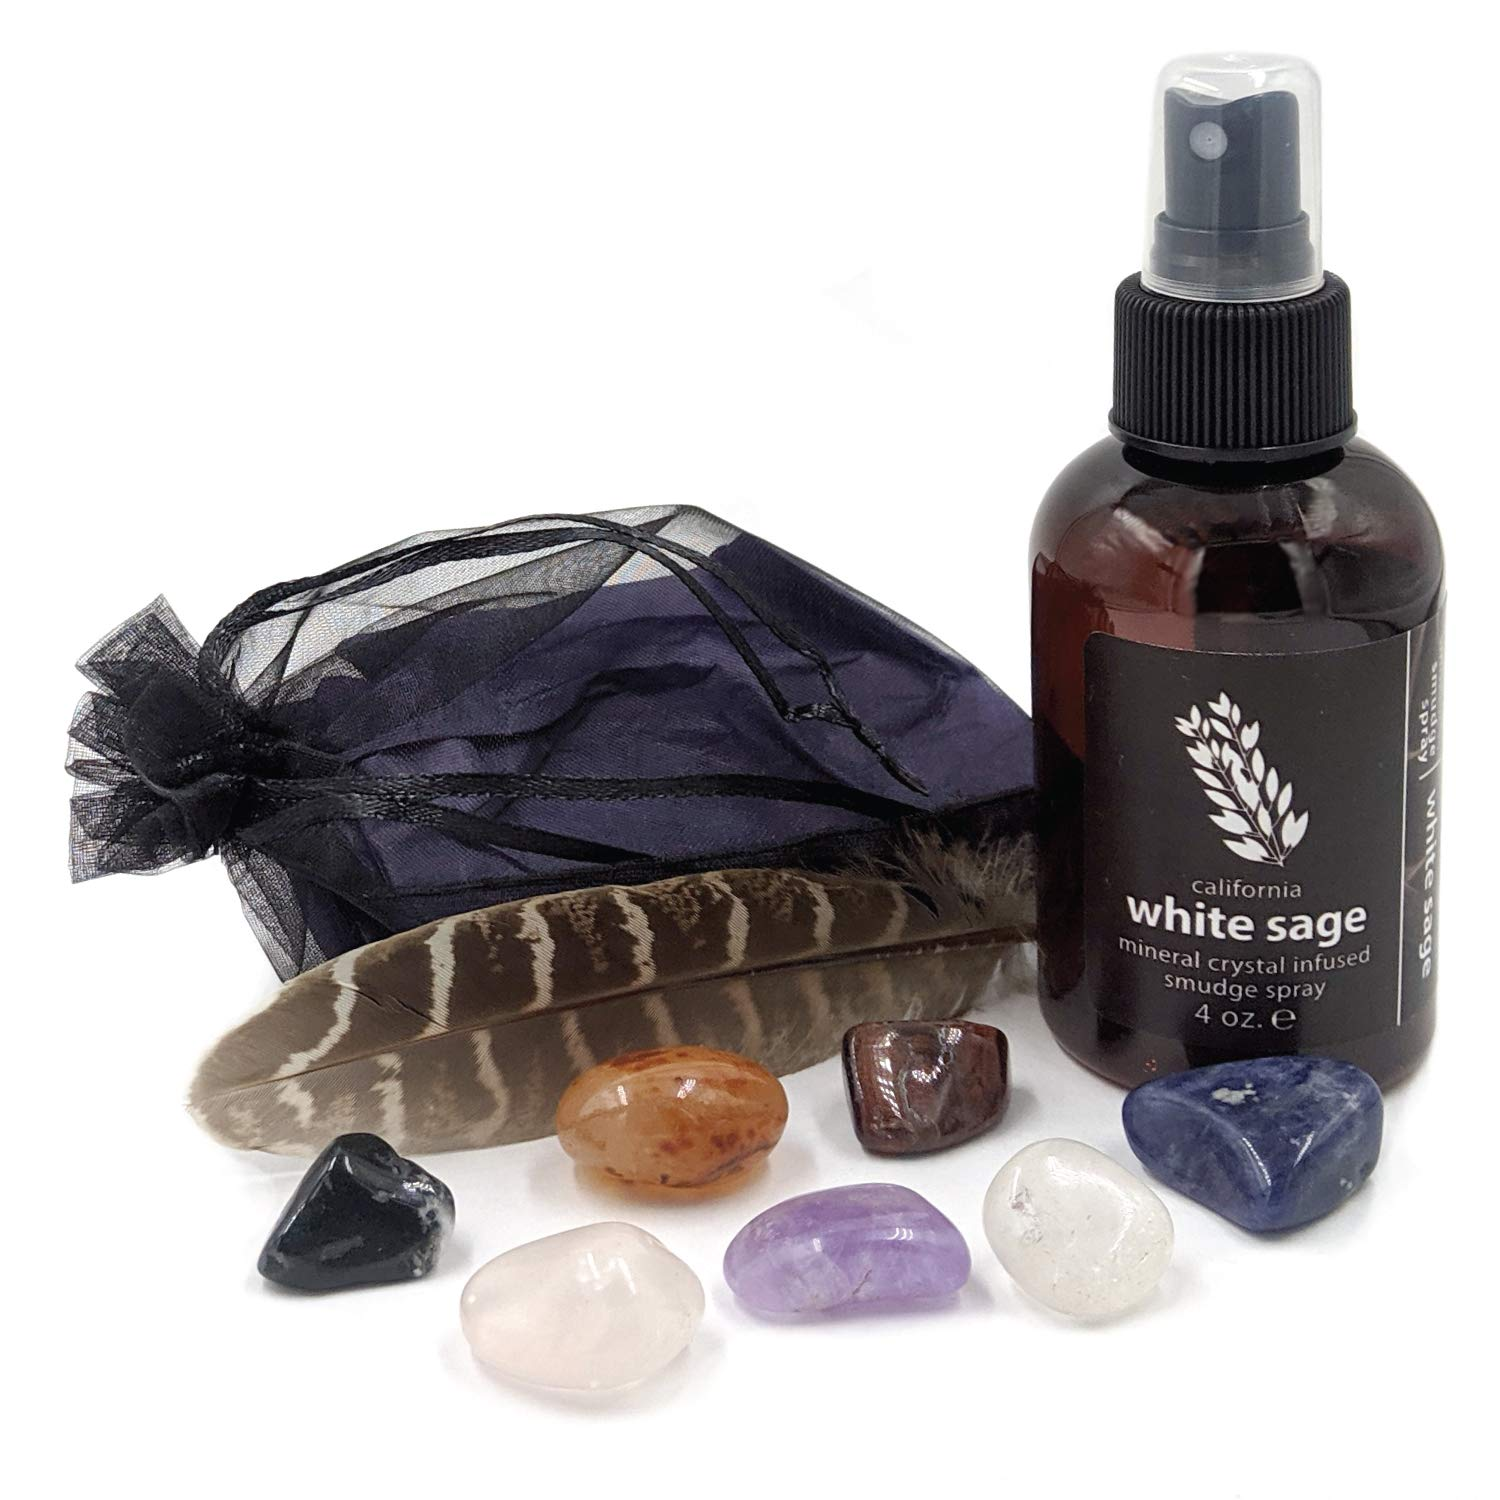 California White Sage Smudge Spray + Chakra Stone Set | Smokeless Smudging Alternative